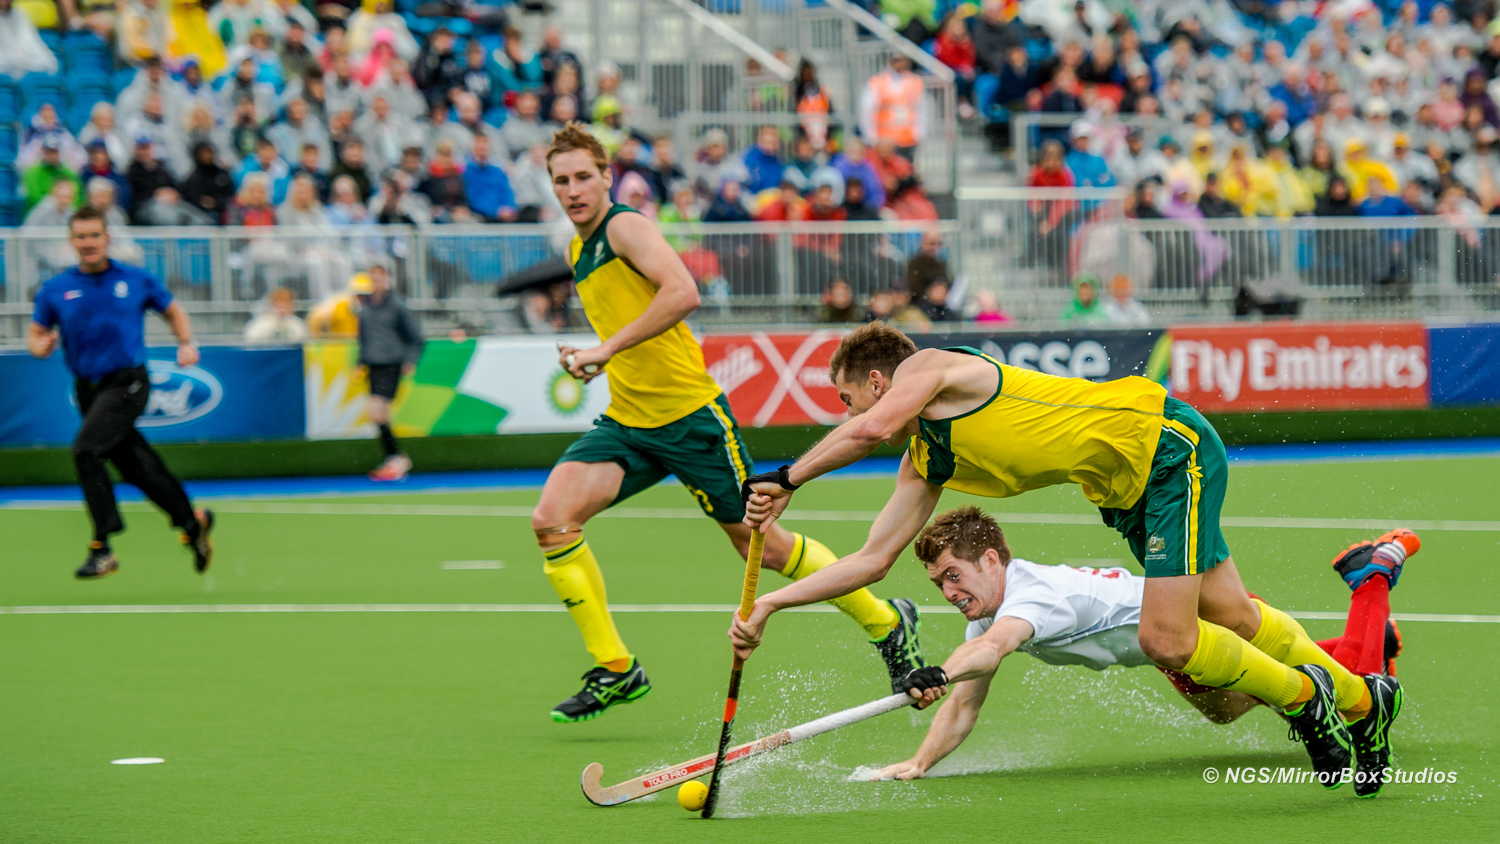 Commonwealth Games Men's Hockey Final